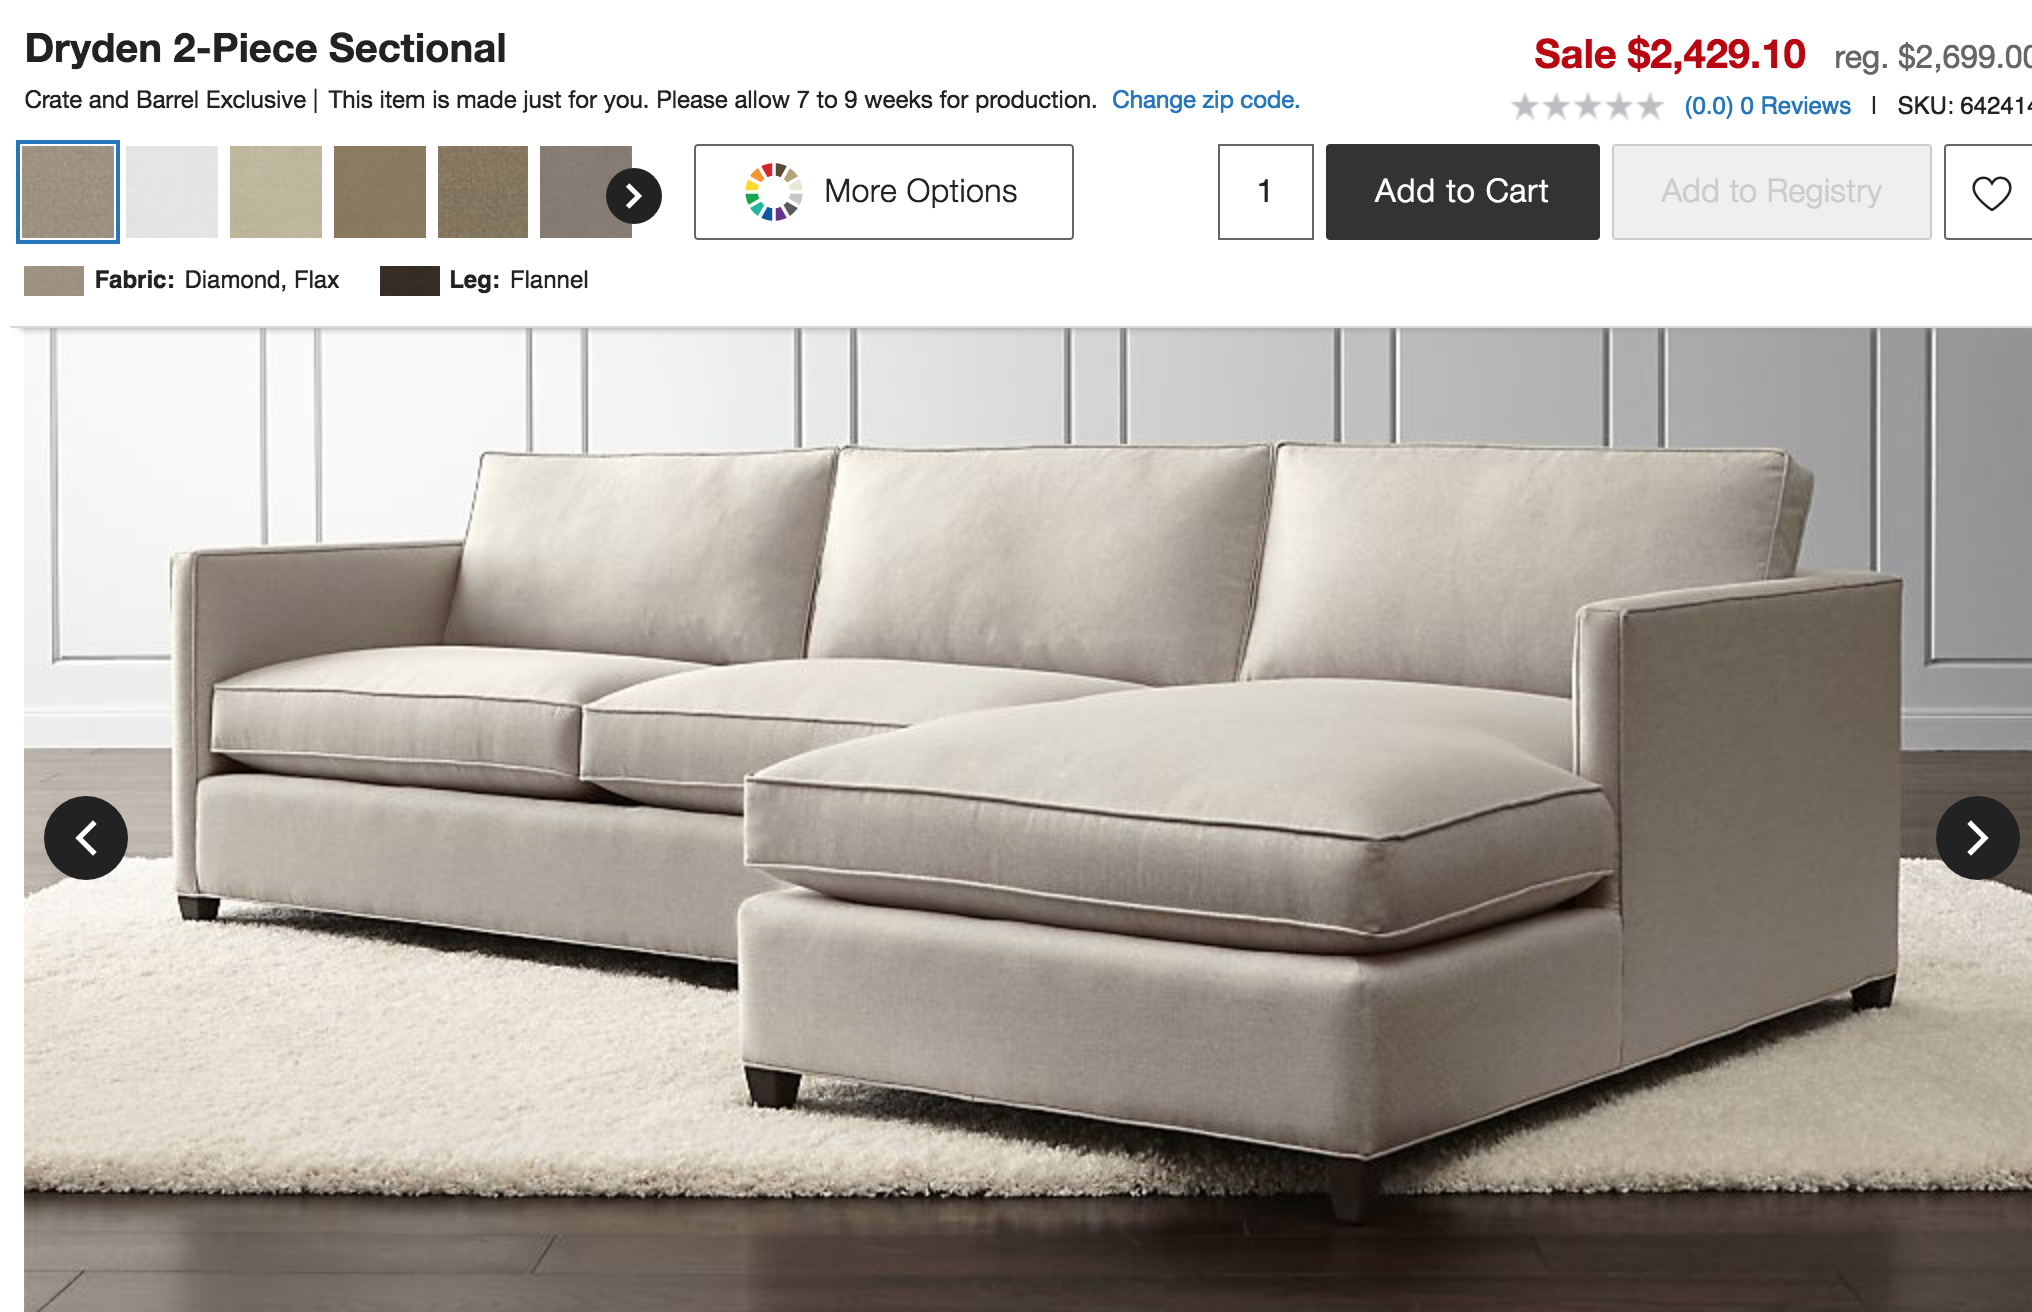 Neat look with welts on cushions dryden sale home theater setup also piece sectional in pinterest rh